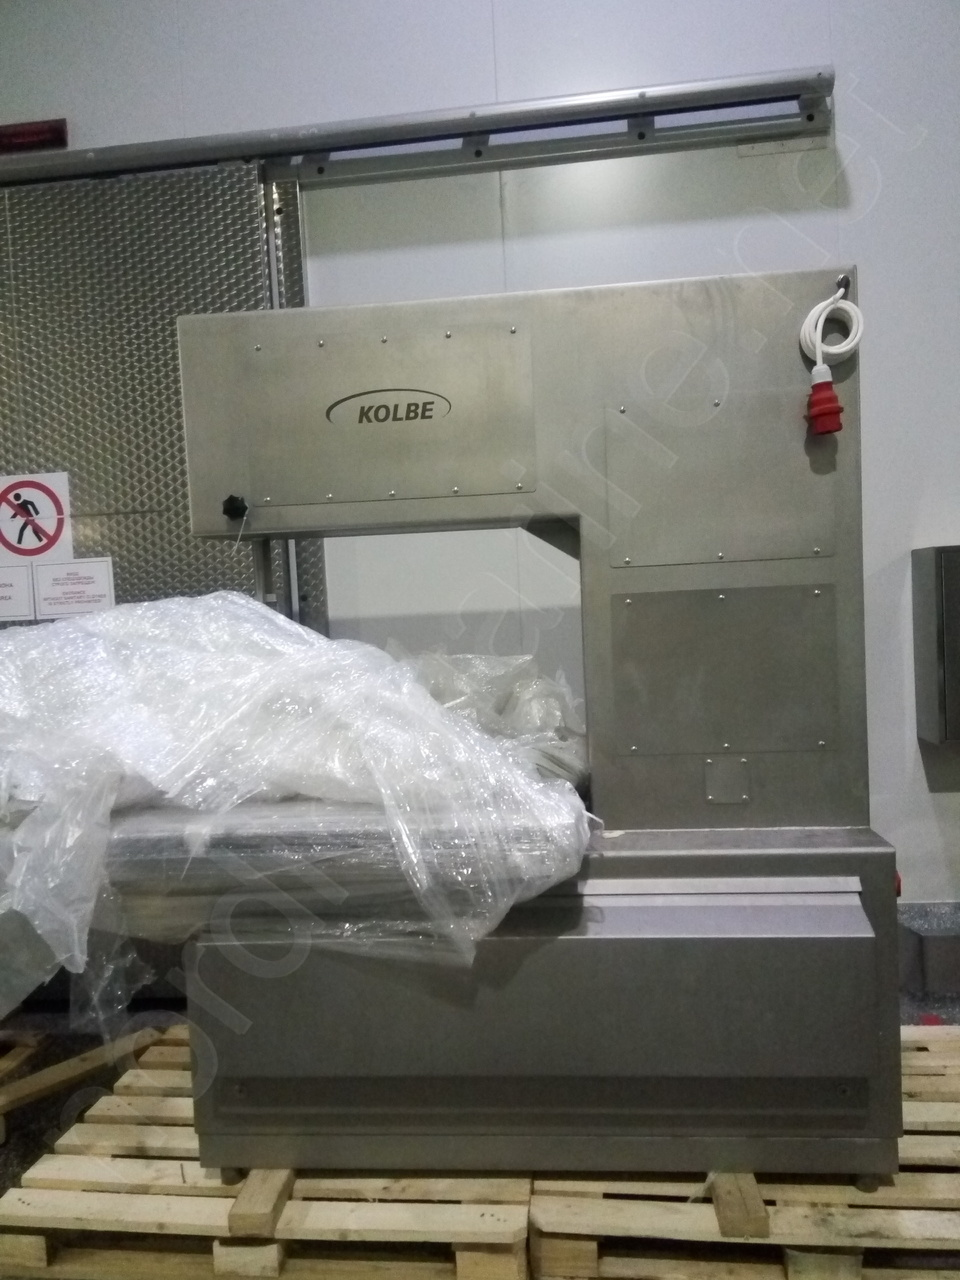 Kolbe K 800 Band saw for frozen fish and meat